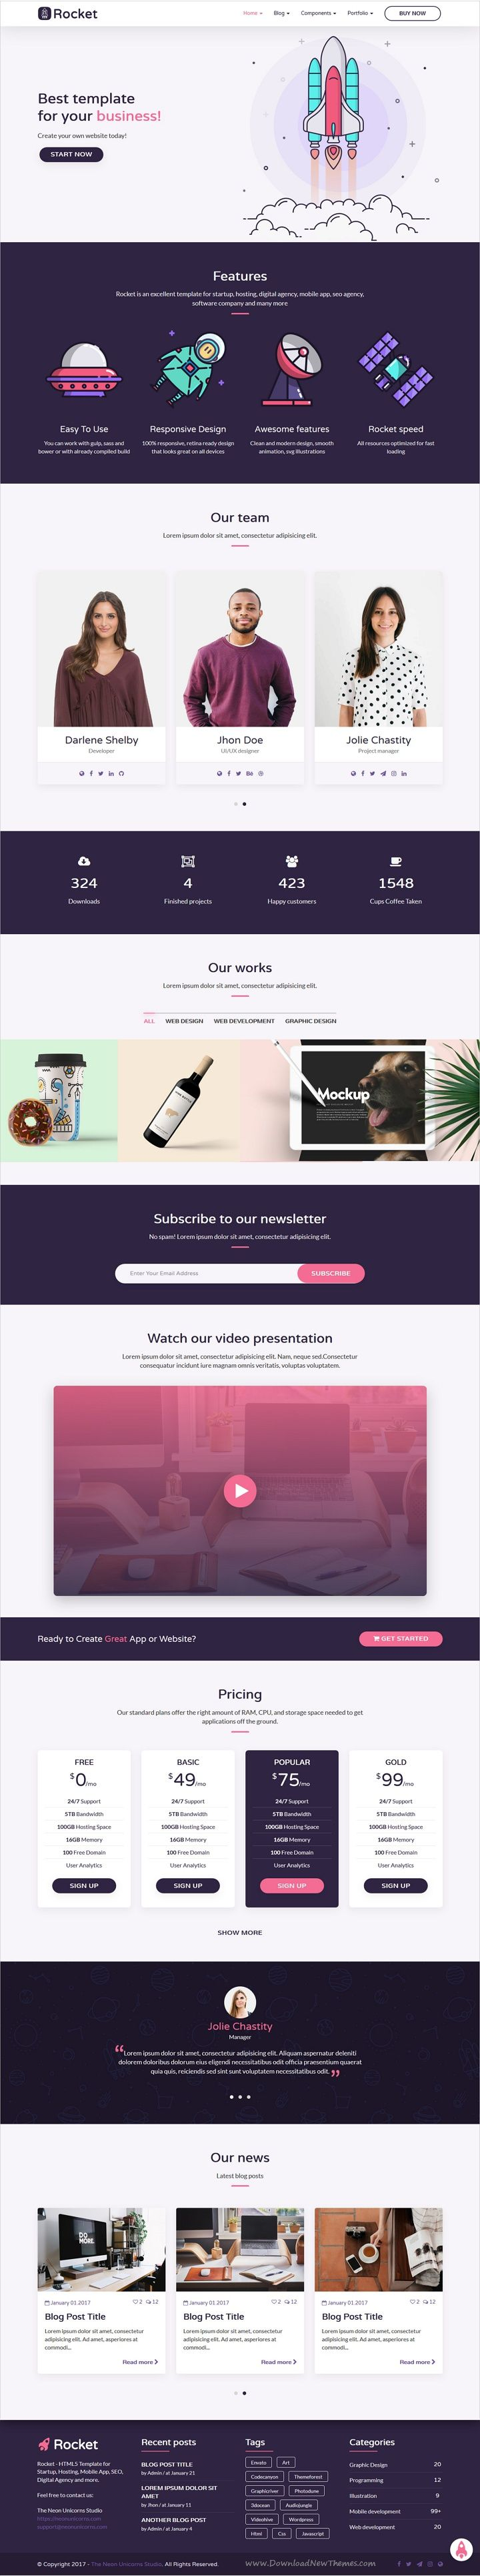 Rocket is an excellent multipurpose 6in1 #bootstrap template for startup, hosting, #digital agency, mobile app, seo agency or #software company website download now..